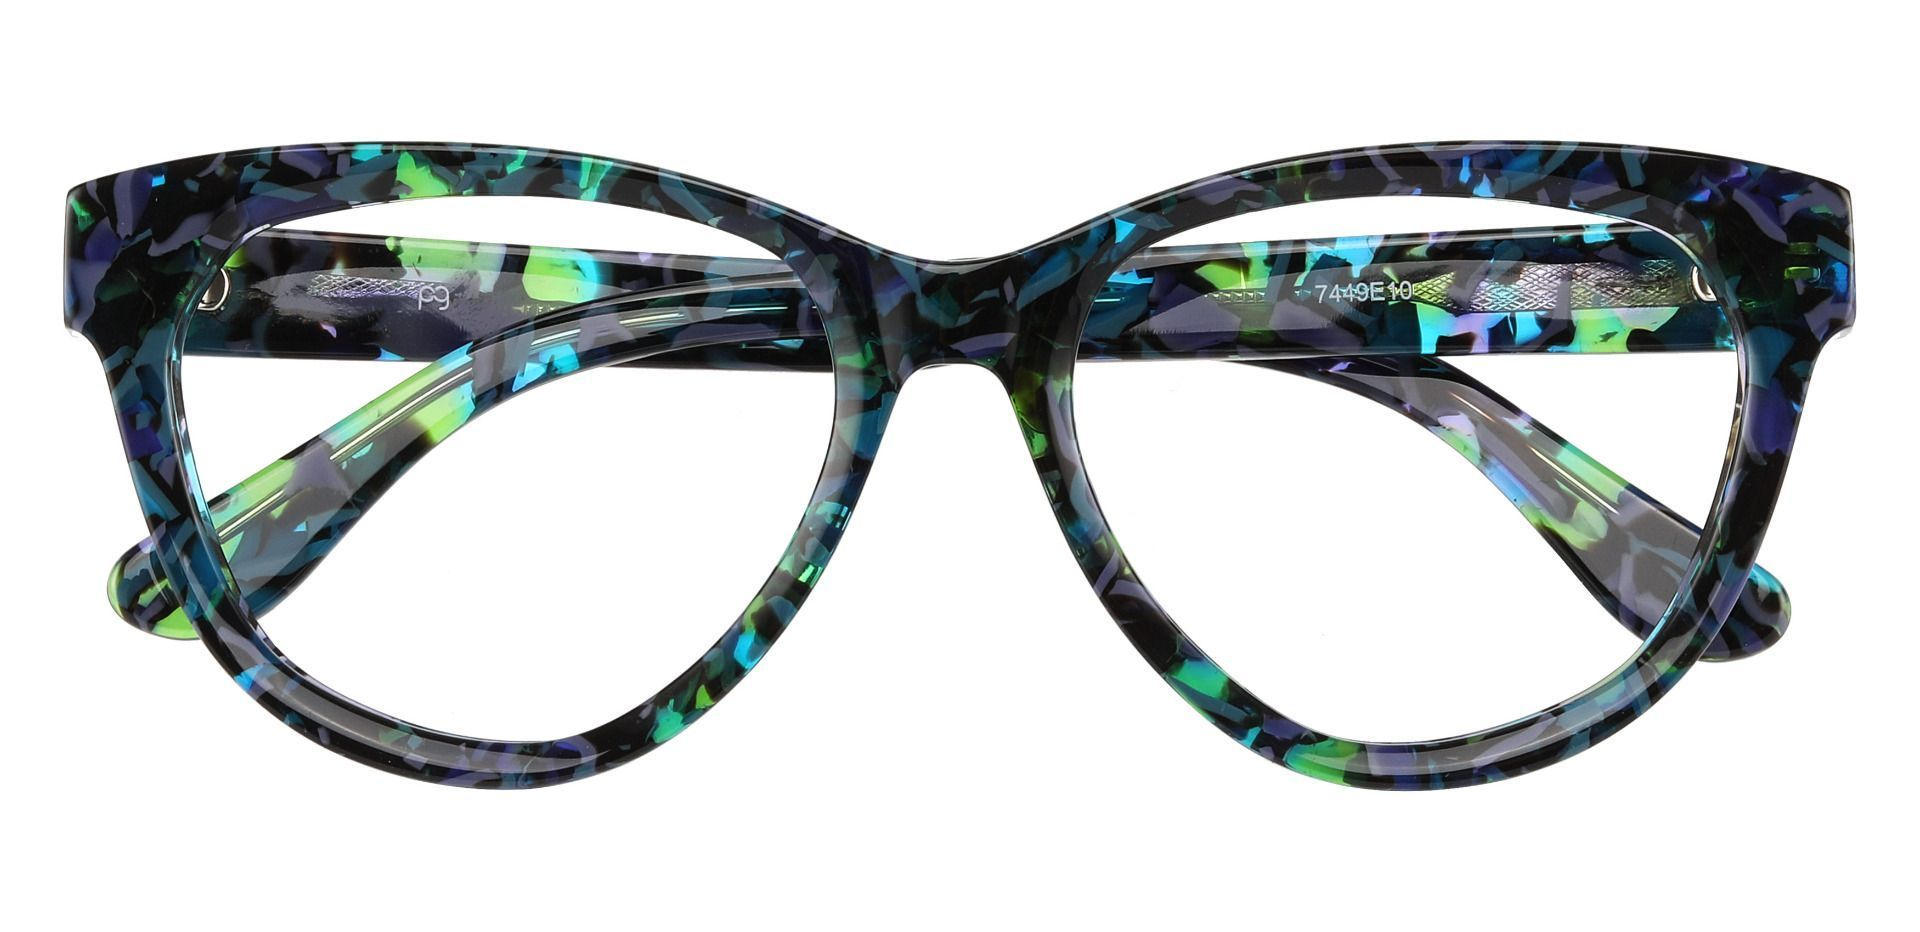 Vienna Cat Eye Eyeglasses Frame - Green